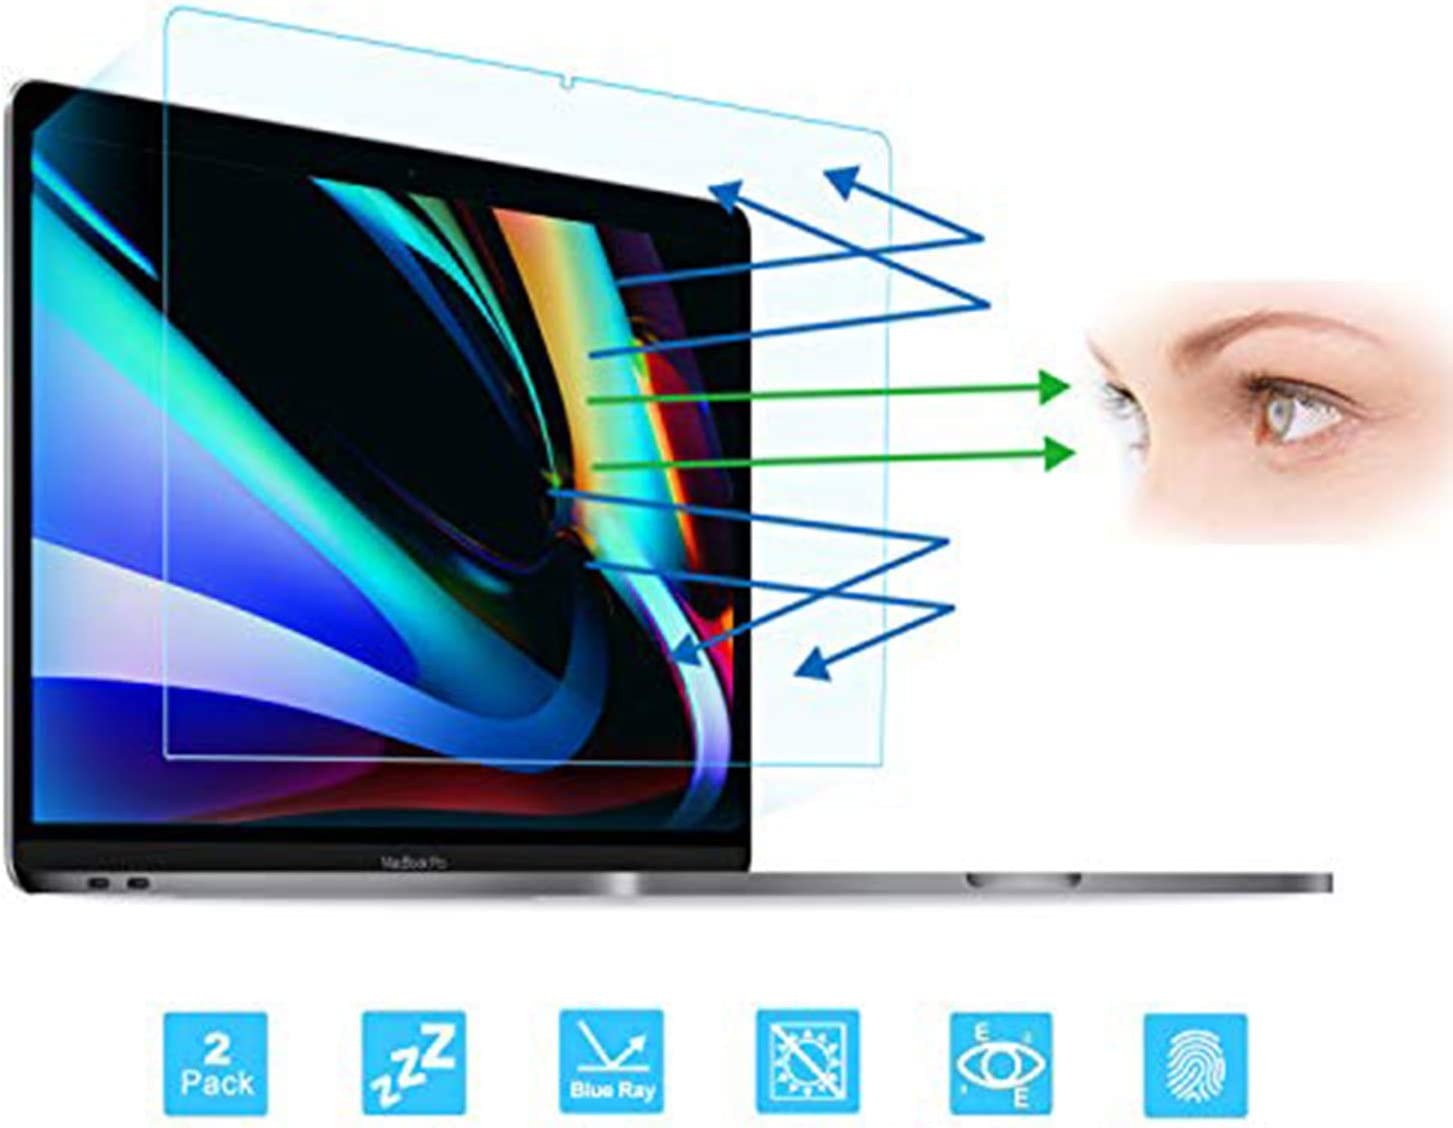 FORITO 2-Pack Compatible with MacBook Pro 16-Inch Screen Protector -Blue Light Filter, Eye Protection Blue Light Blocking Anti Glare Screen Protector for Apple MacBook Pro 16 Model A2141